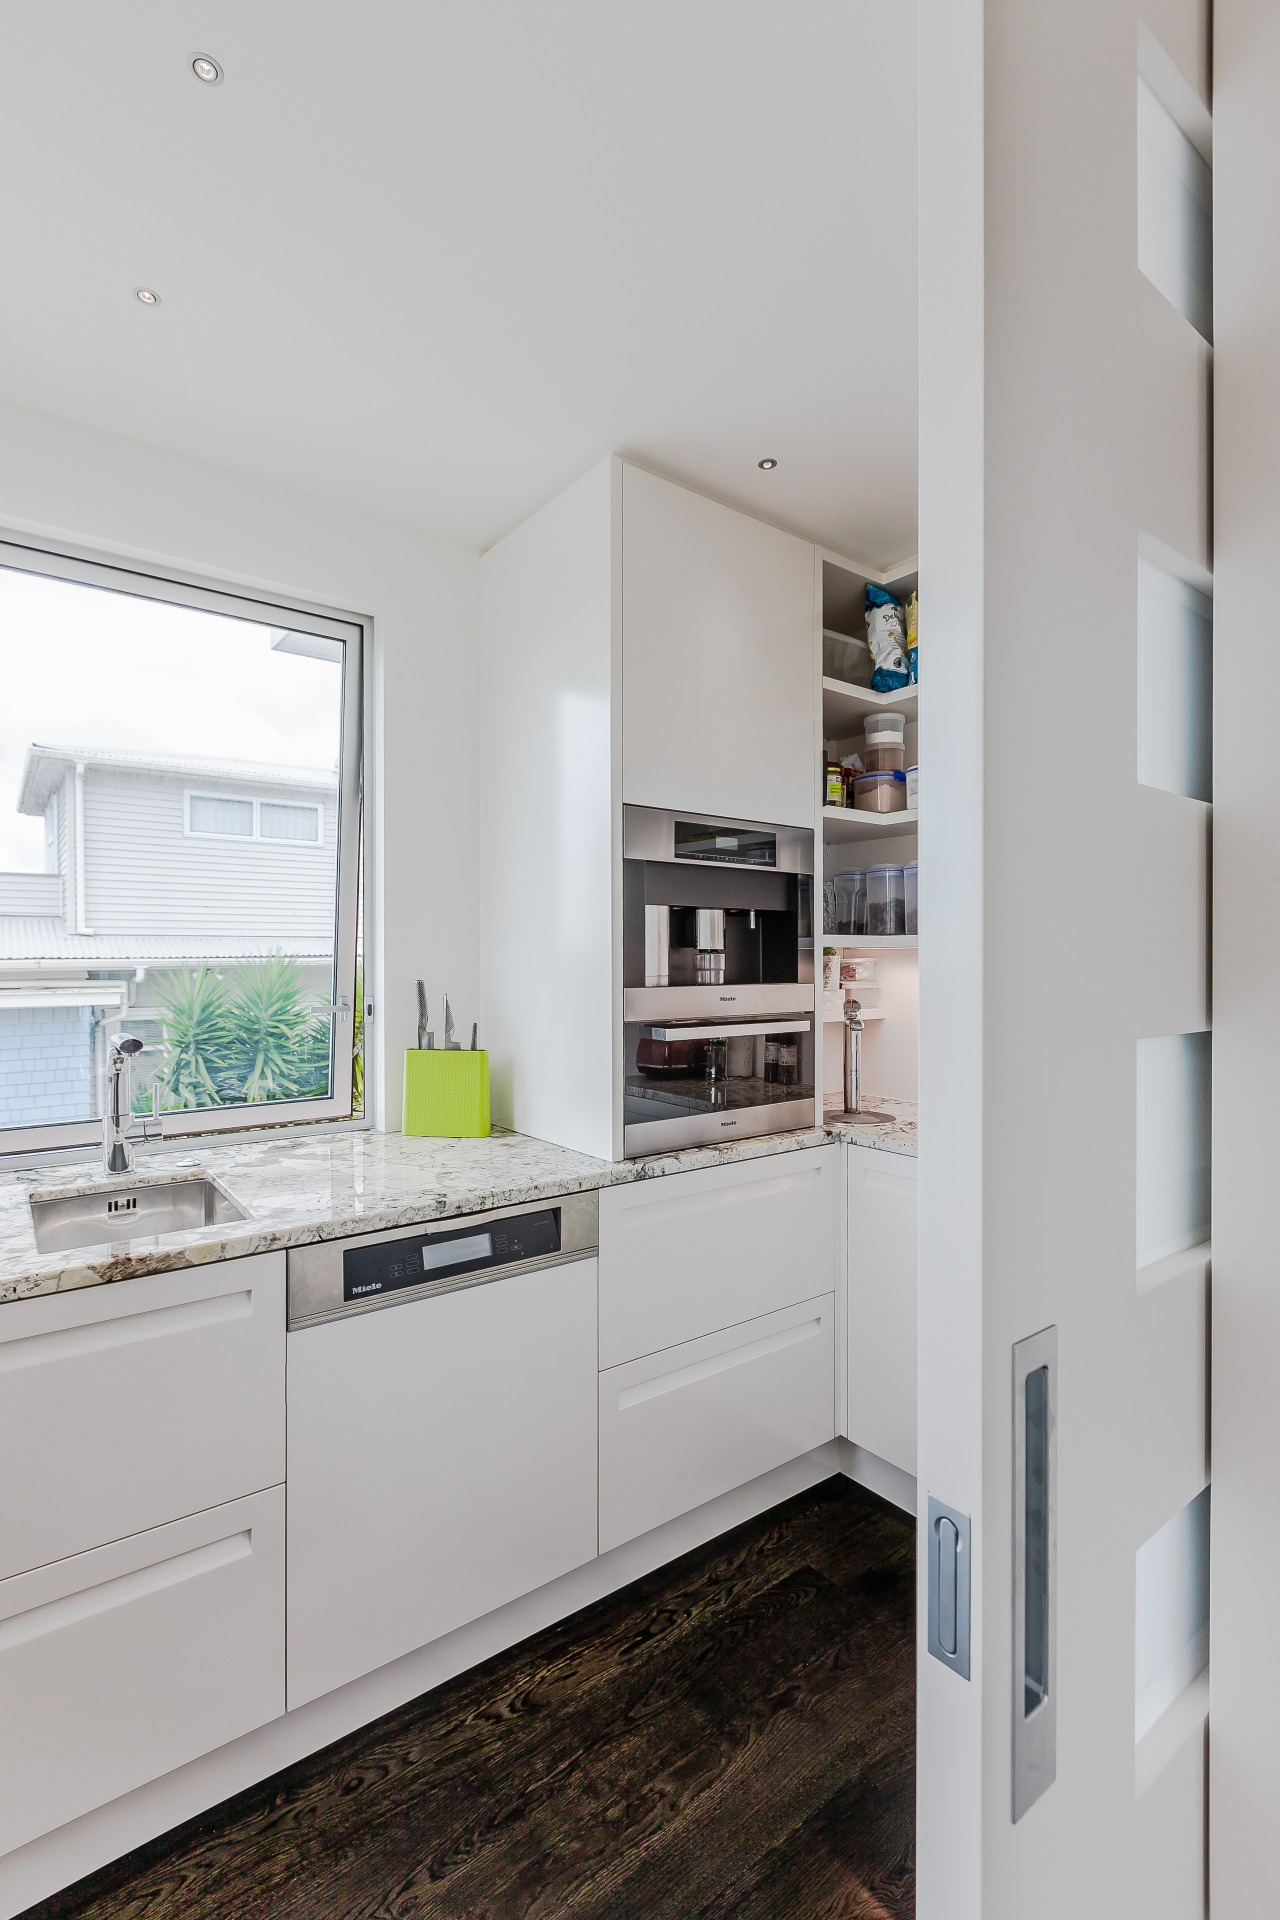 Hidden behind a sliding door, the scullery in cabinetry, countertop, cuisine classique, home appliance, interior design, kitchen, refrigerator, gray